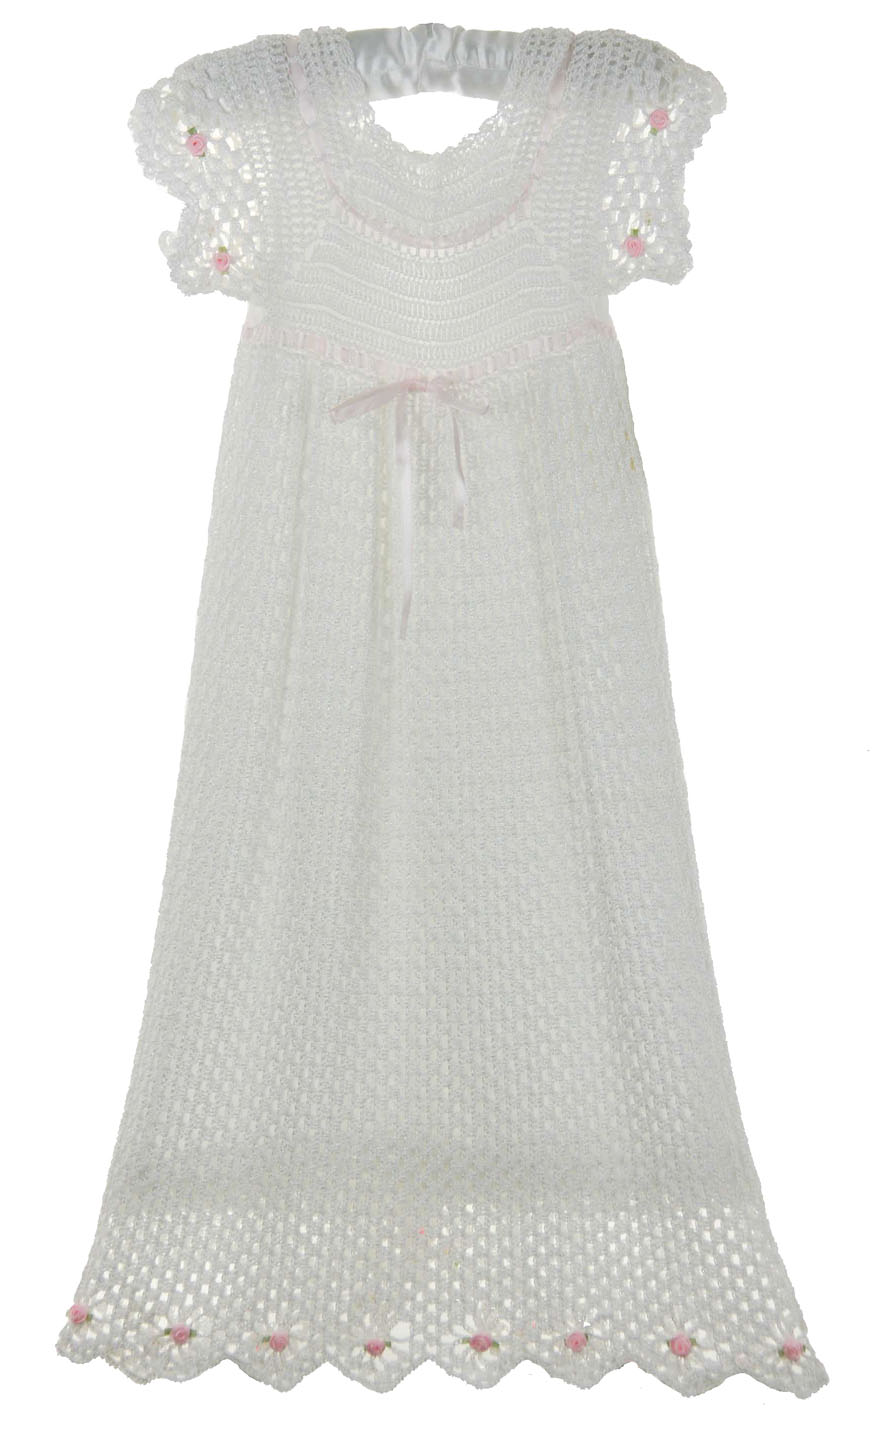 custom crocheted white christening gown for baby girls,custom ...